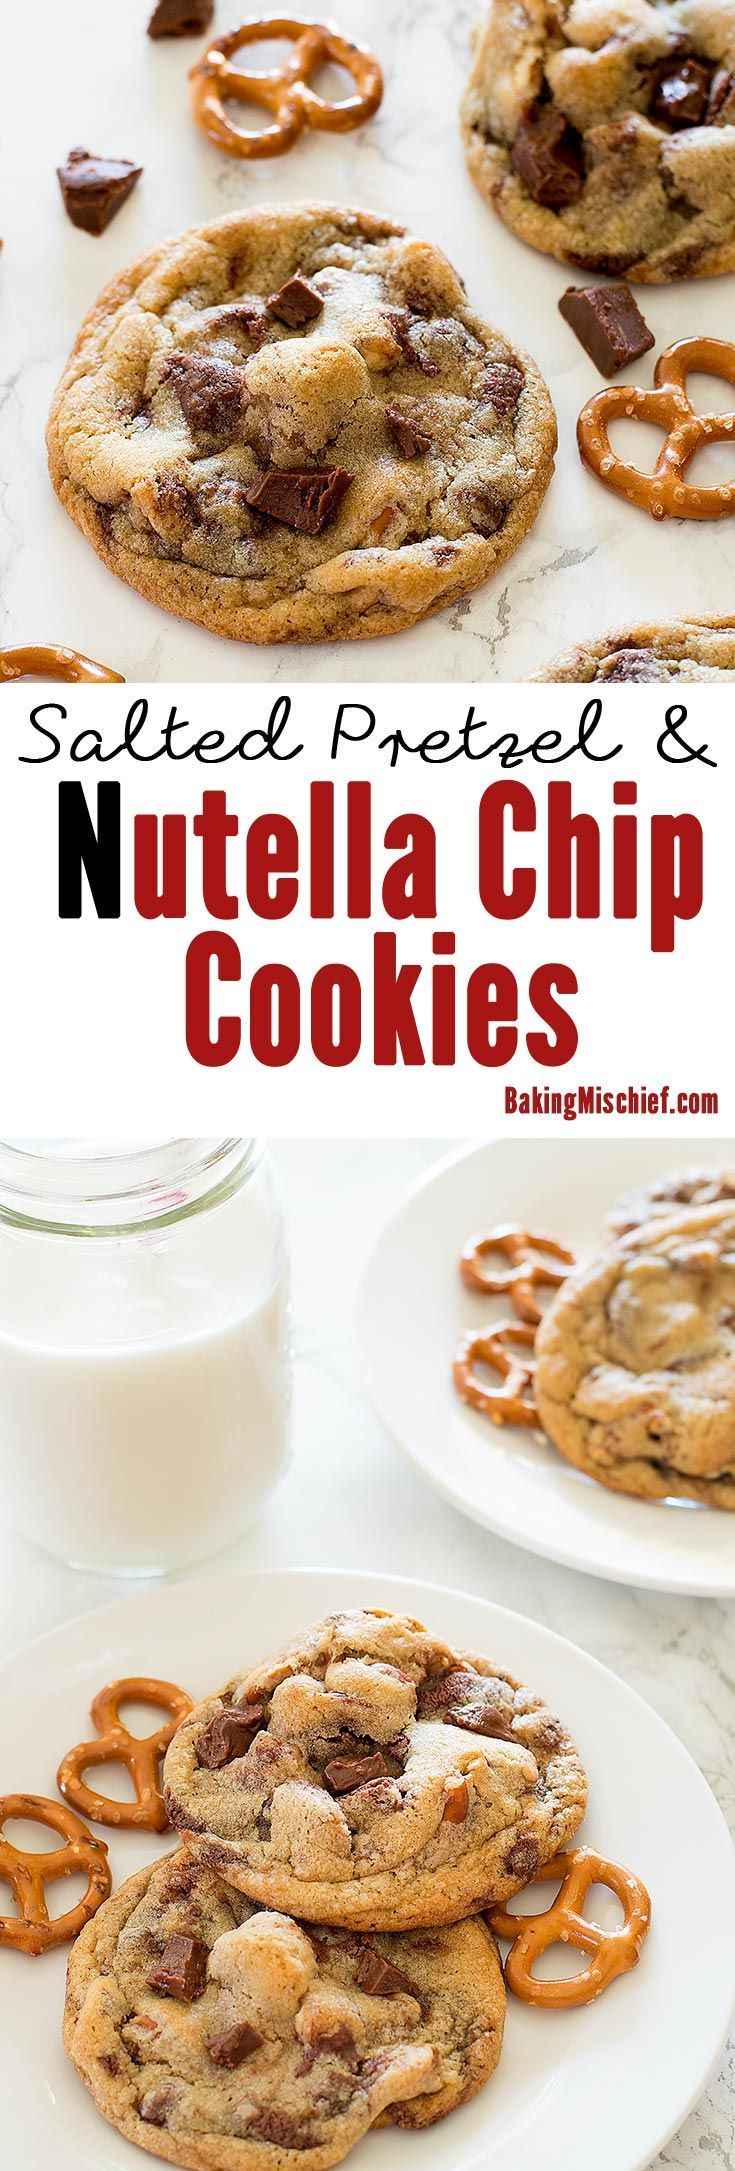 Delicious cookies with chunks of salty, crunchy pretzel and homemade Nutella chips in every bite. Recipe includes nutritional information. From http://BakingMischief.com